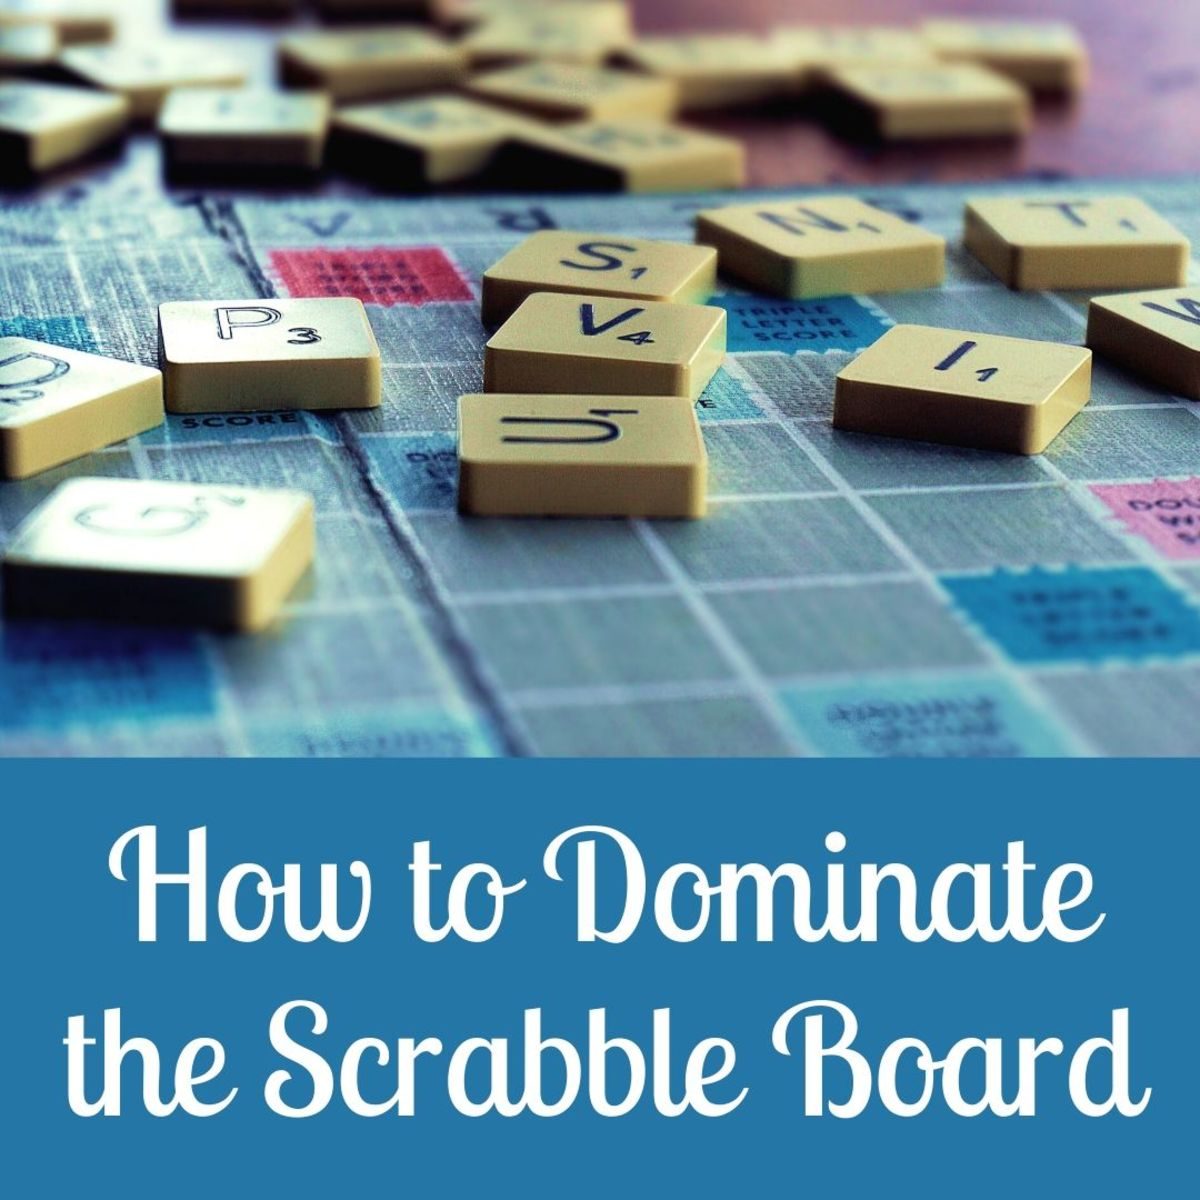 Learn how to beat your opponents at Scrabble every time!